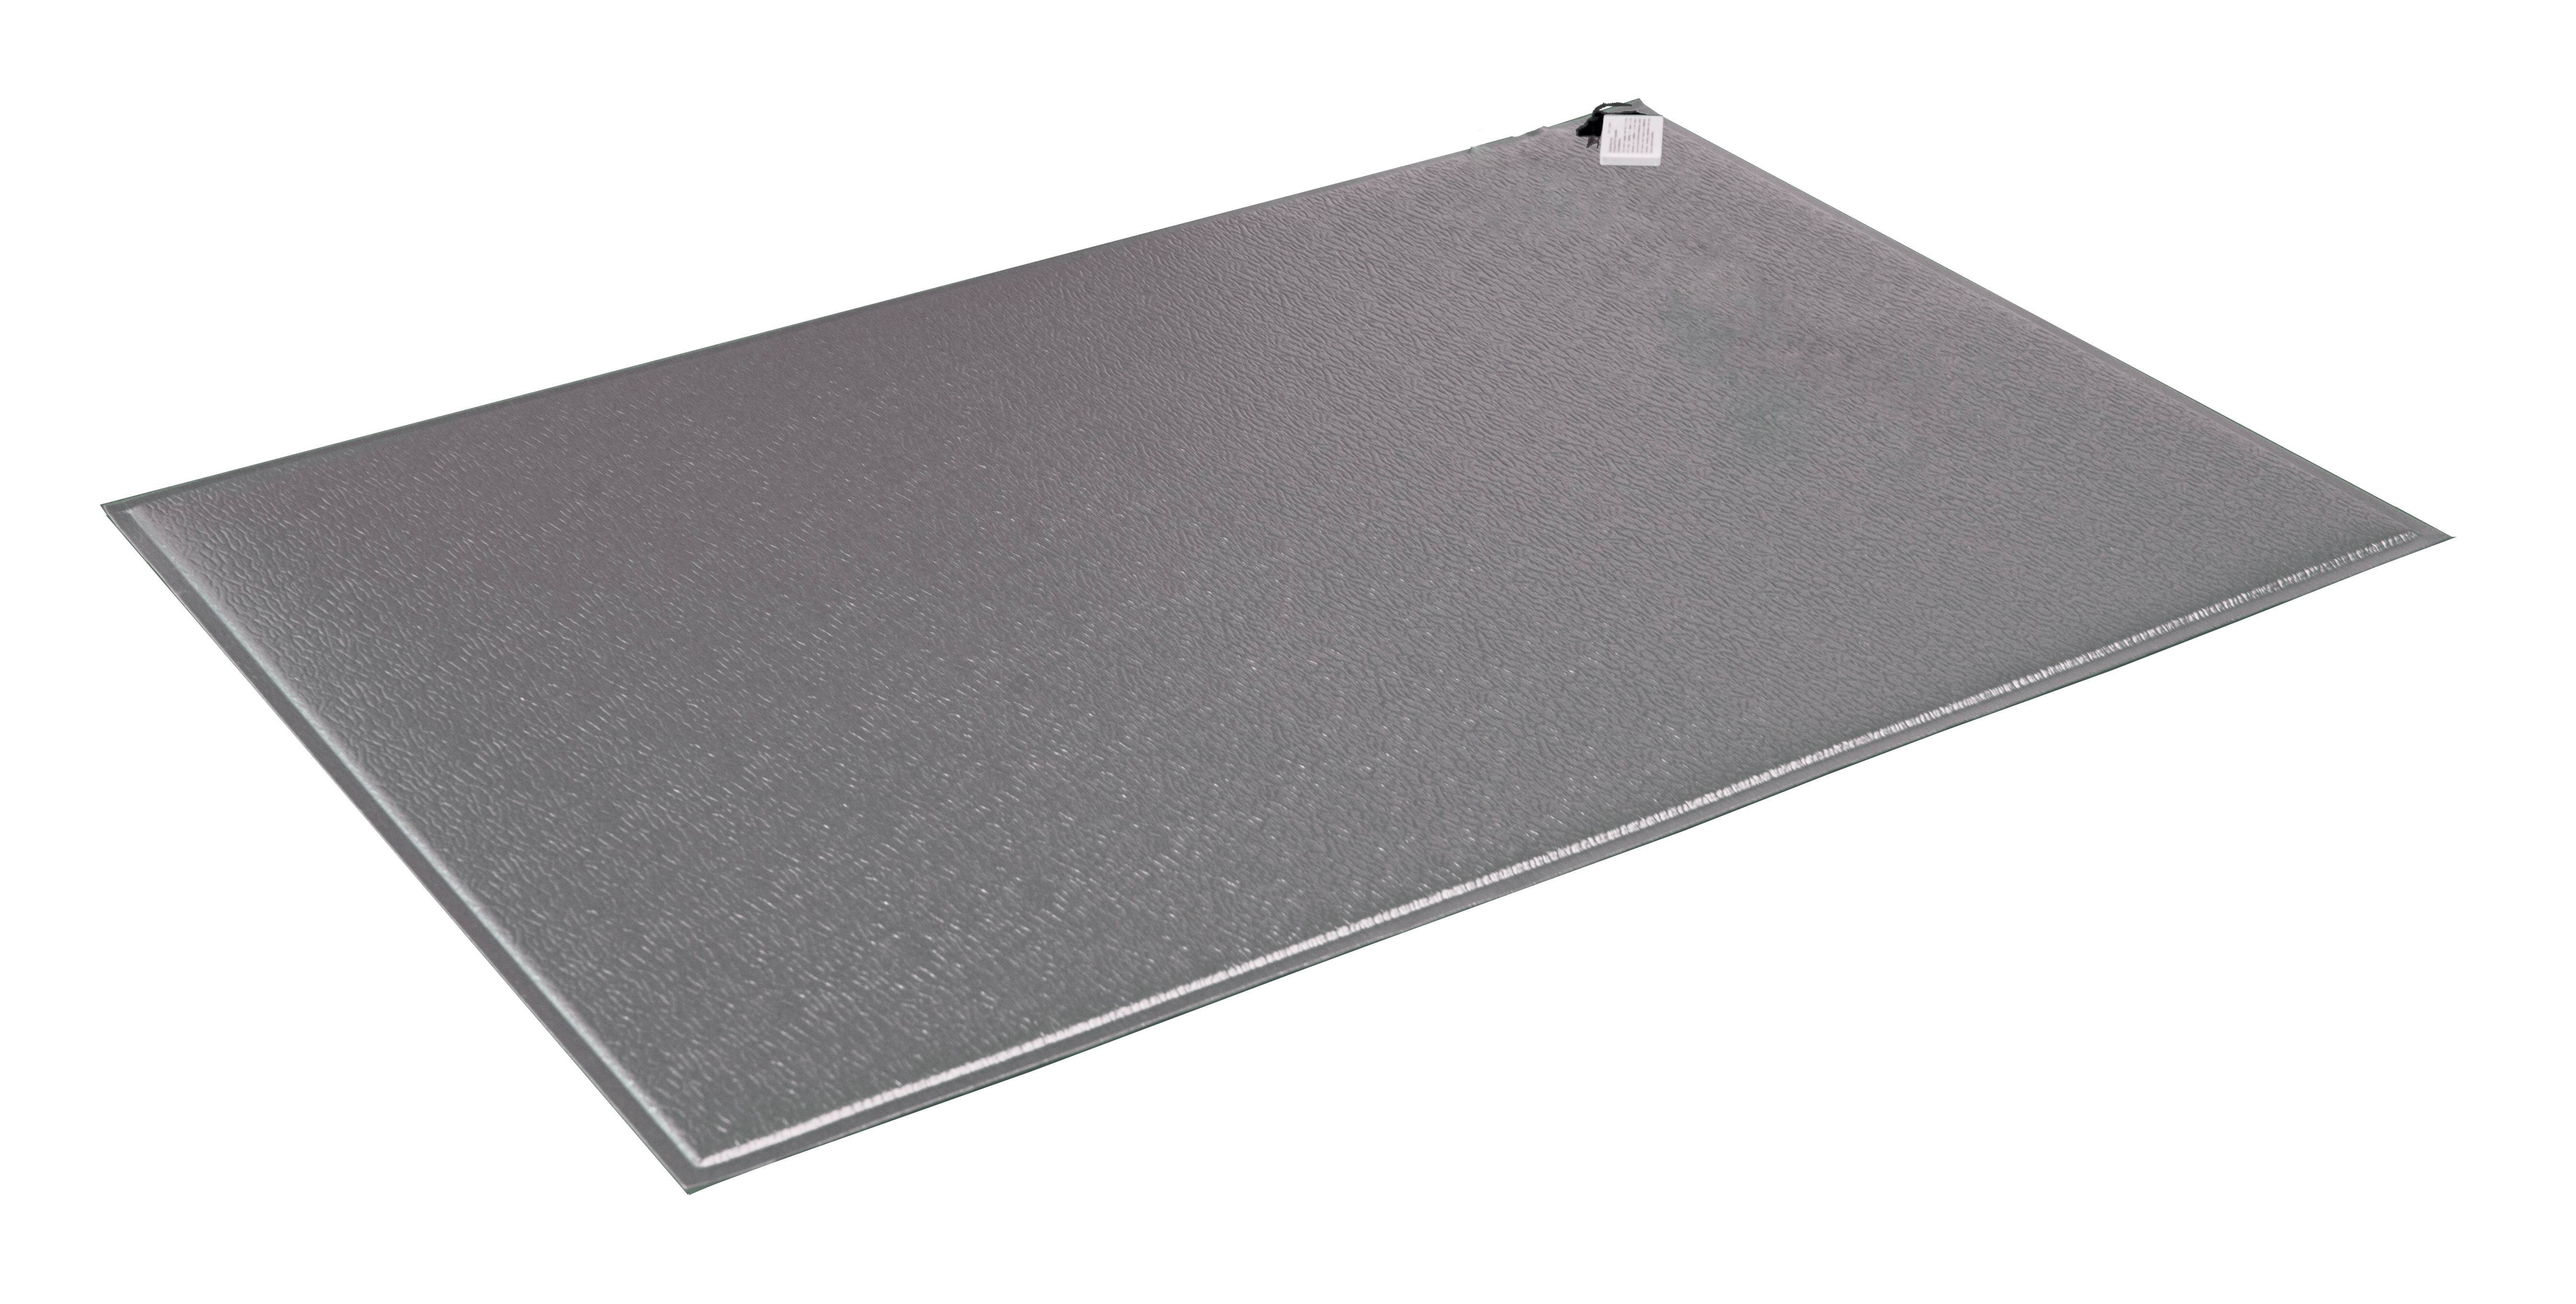 fmt-05c-cordless-floormat-24x36-gray-national-call-systems.jpg